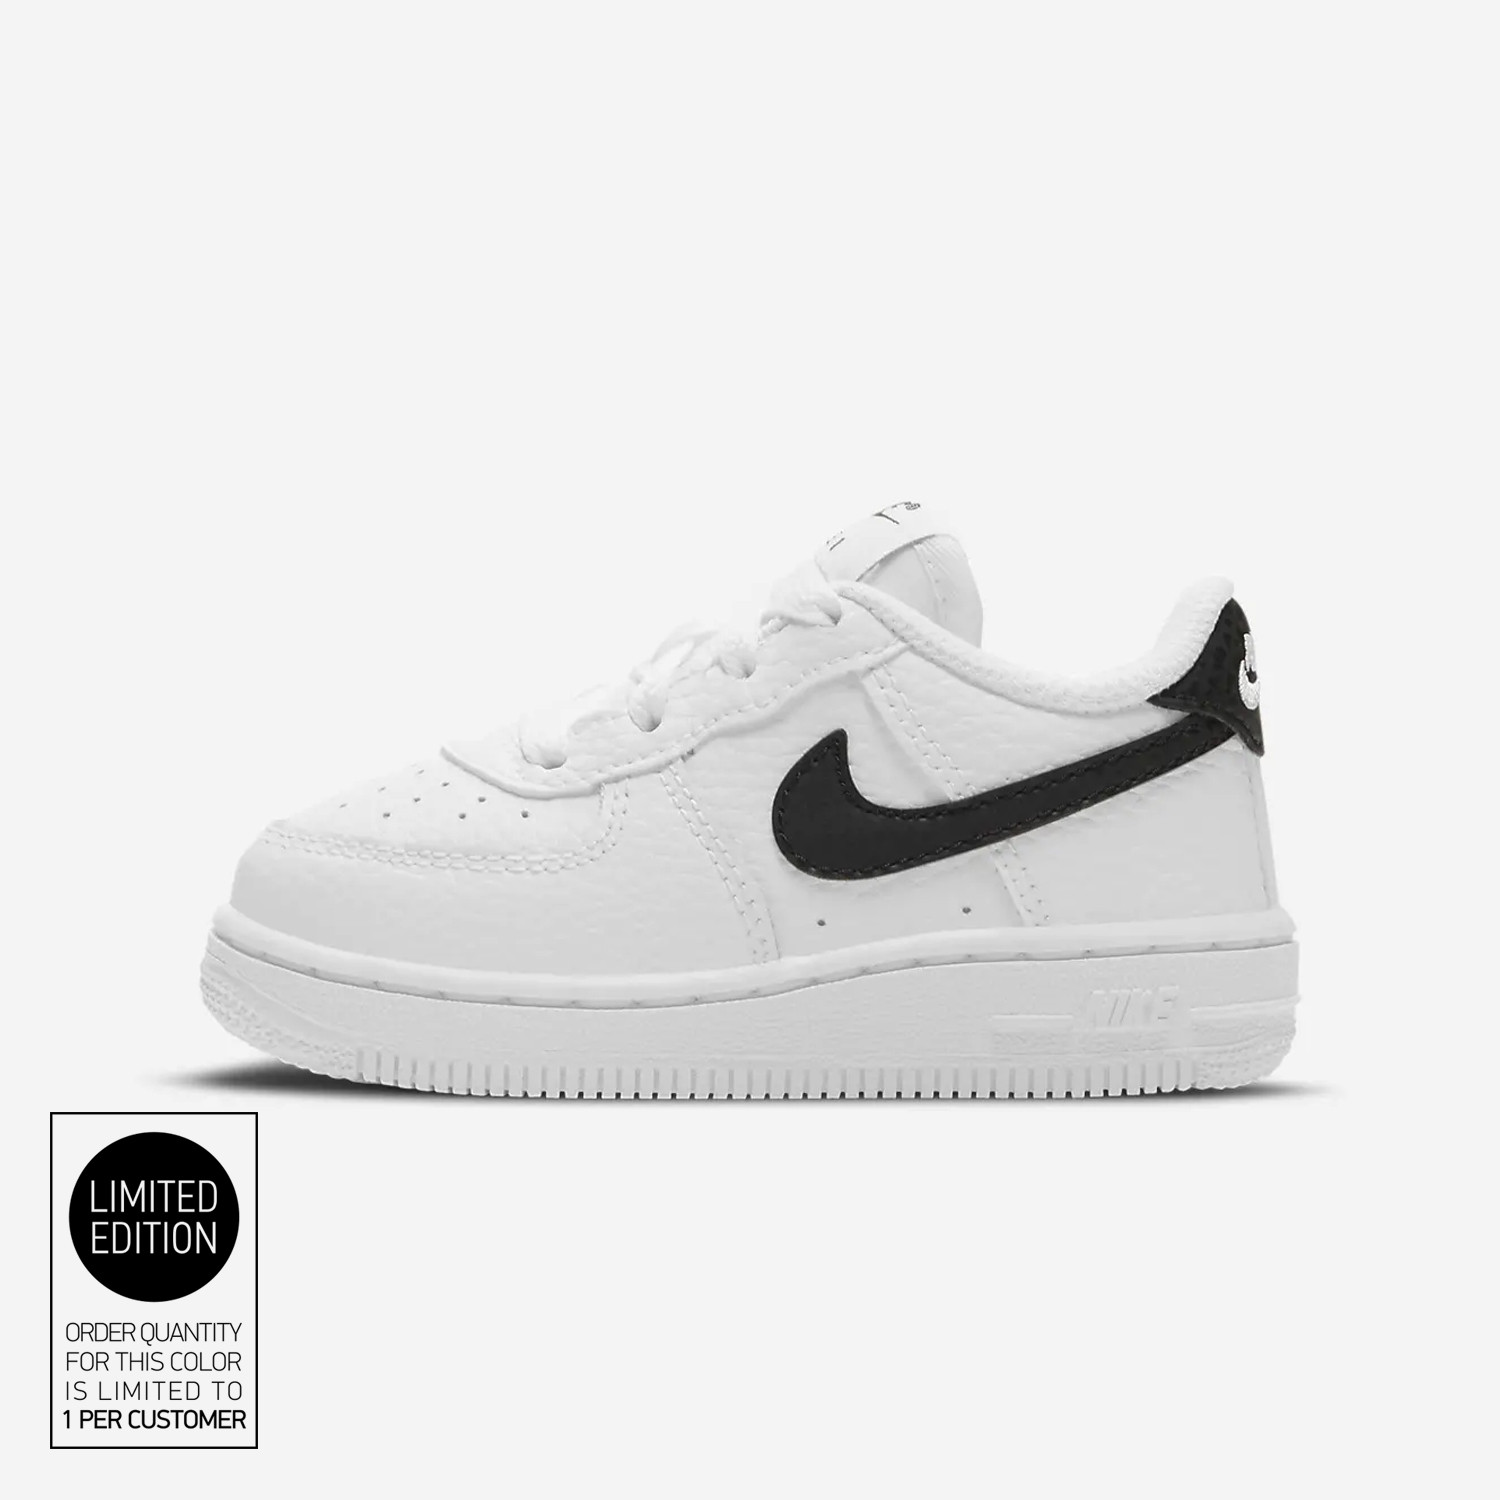 Nike Air Force 1 Βρεφικά Παπούτσια (9000077562_1540)